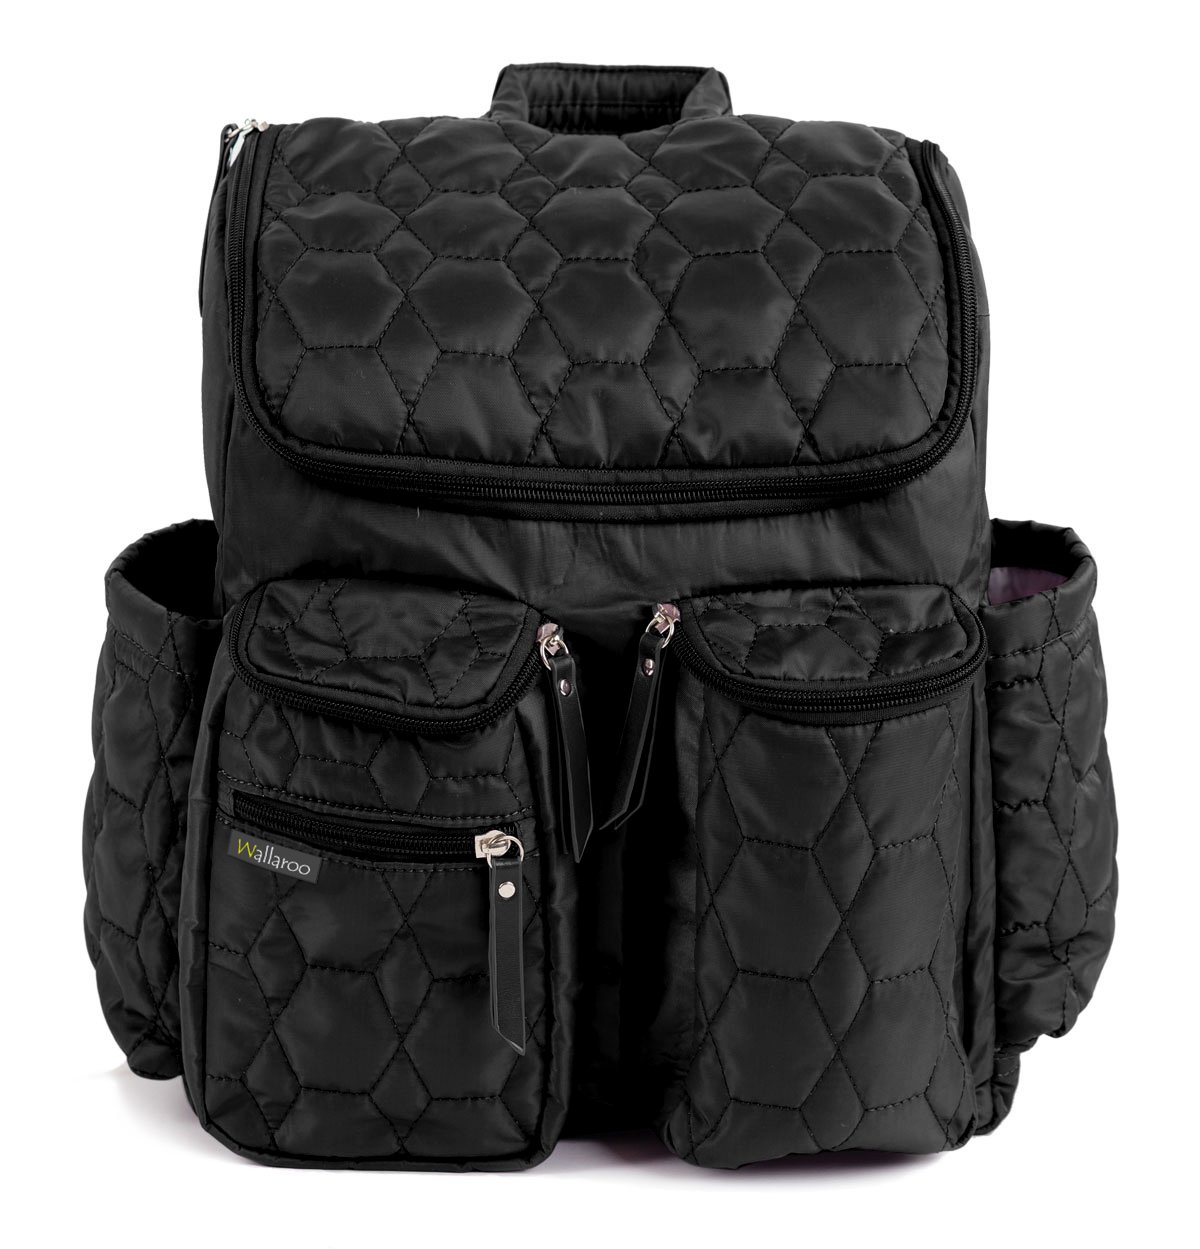 Diaper Backpack by Wallaroo - with Stroller Straps, Wet Diaper Bag and Changing Pad – for Women and Men - 28 Liters (Large) - Black